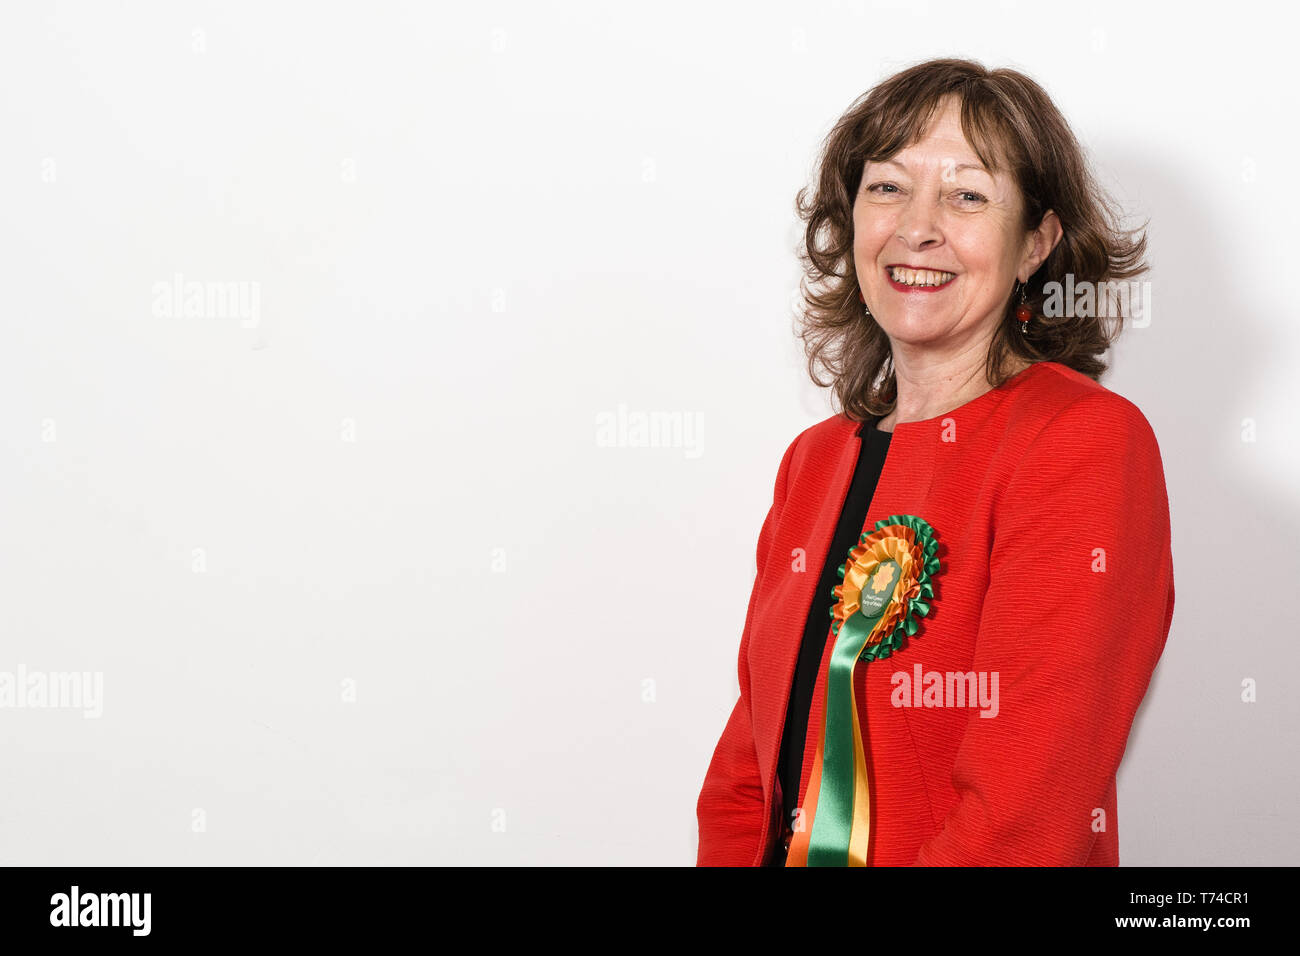 Jill Evans MEP - Plaid Cymru Member of the European Parliament for Wales Stock Photo